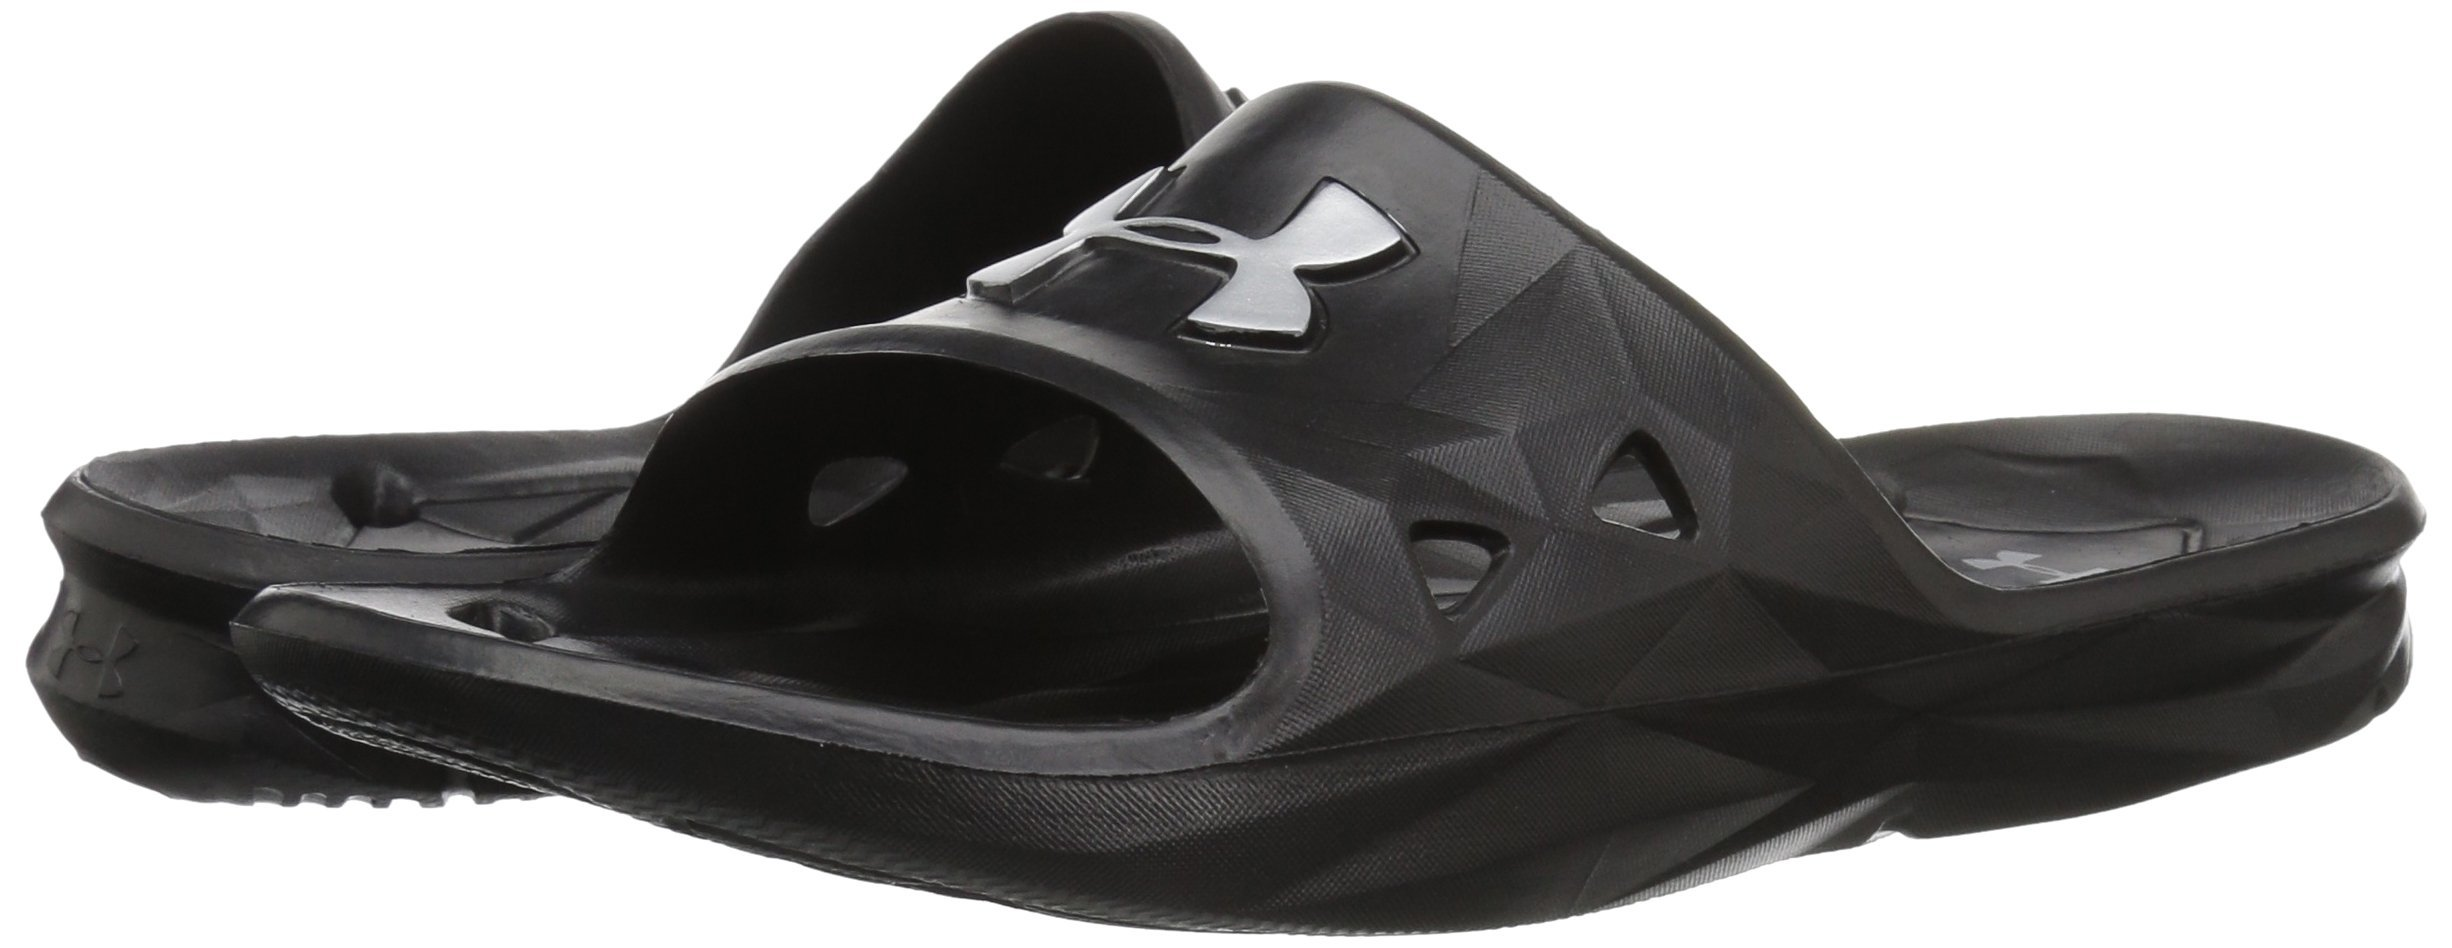 UNDER ARMOUR Men's Locker III Slide Sandal, Black (001)/Metallic Silver, 10